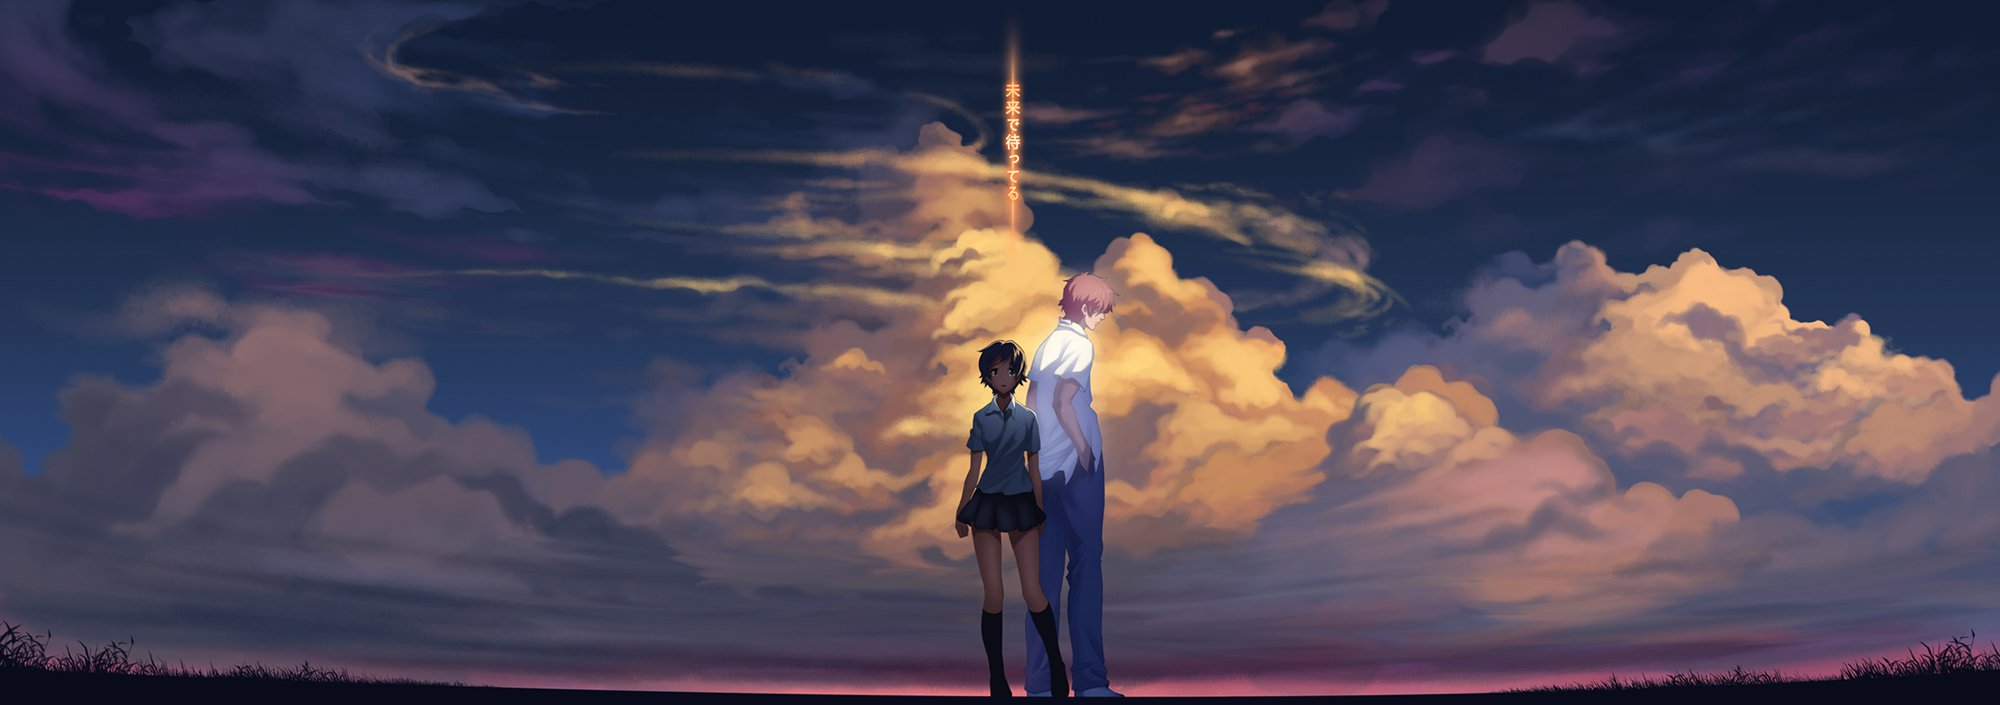 The Girl Who Leapt Through Time film still